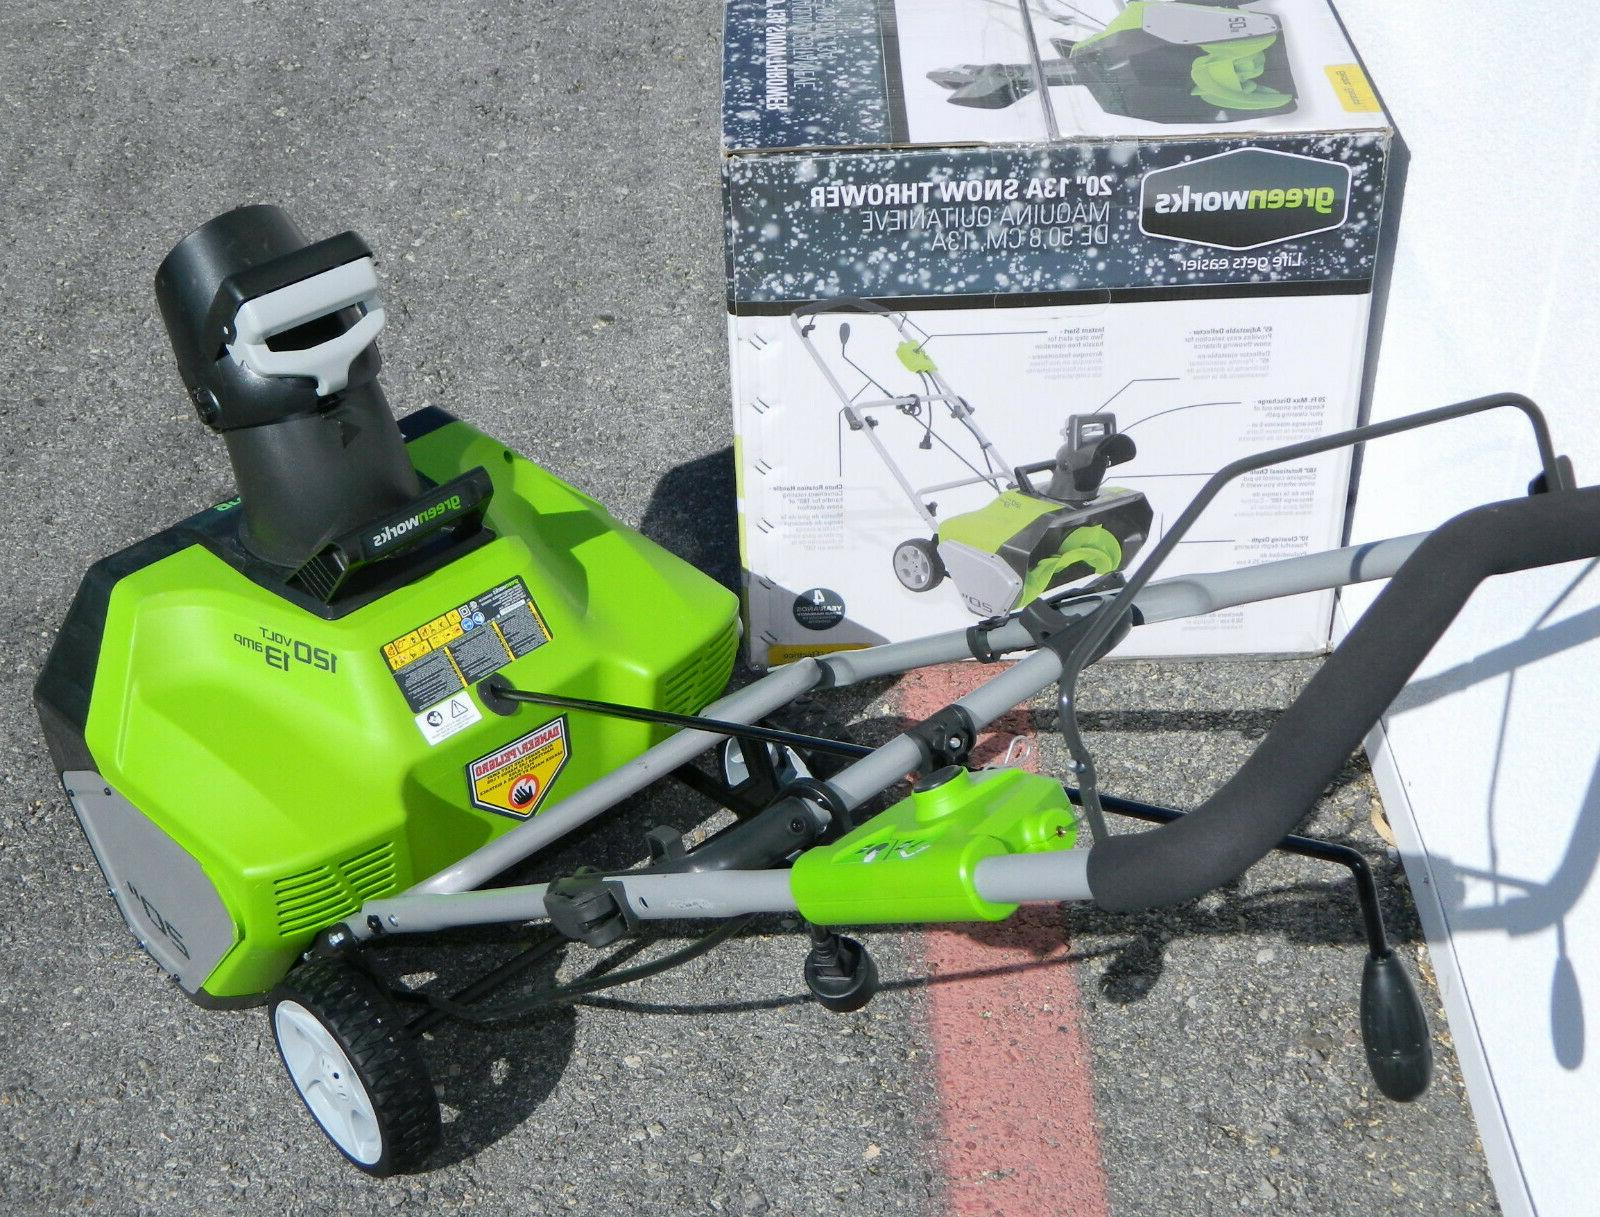 GreenWorks Amp Corded-Electric Remover Blower Cleaner